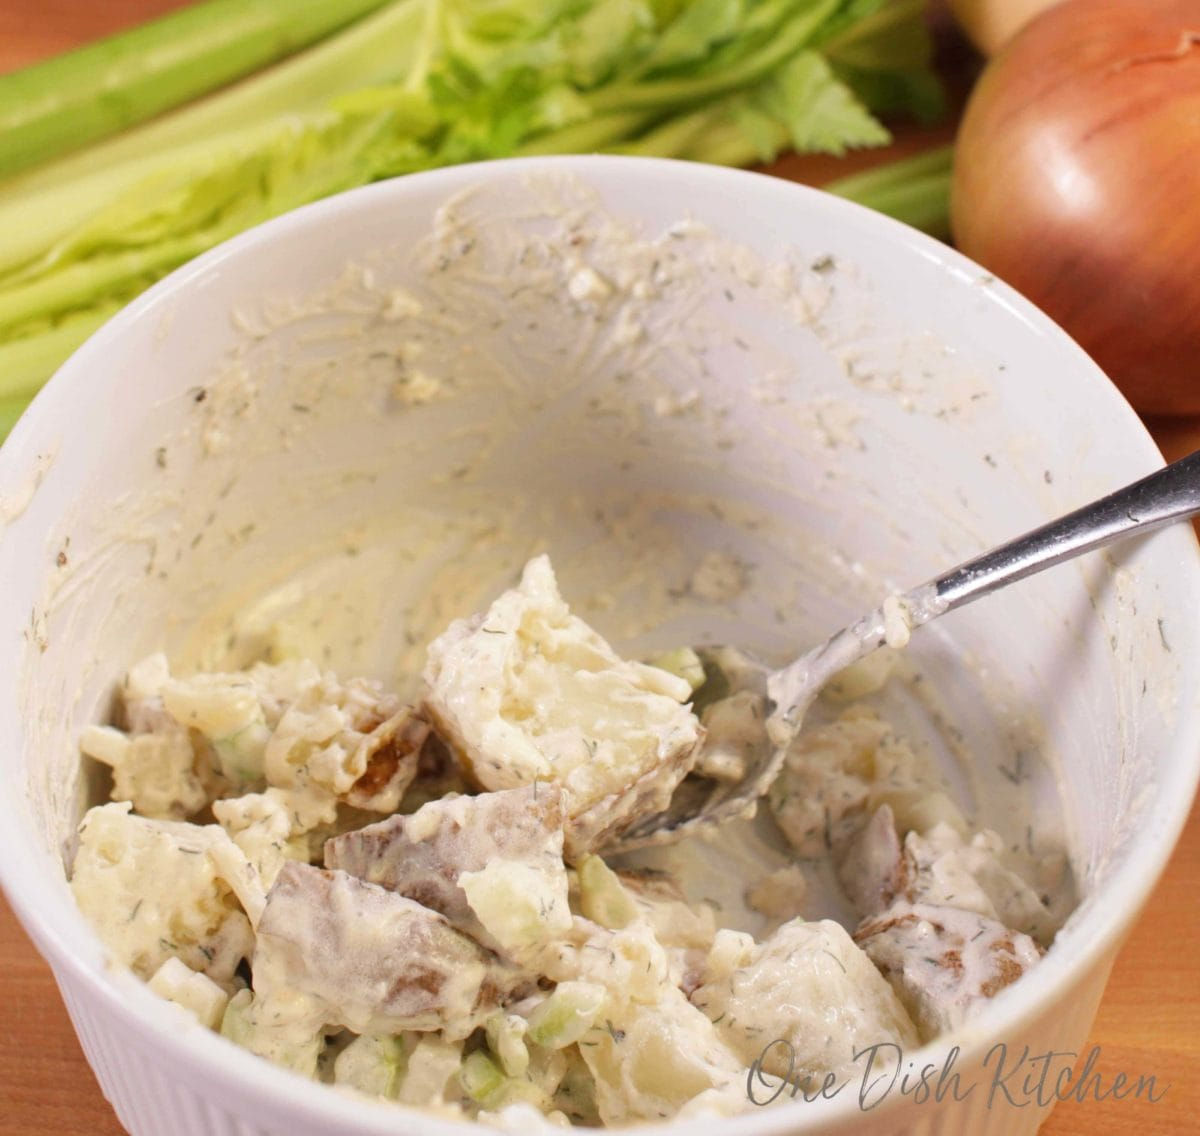 mixing onions, celery, potatoes, mayonnaise, and mustard together in a bowl to make potato salad.